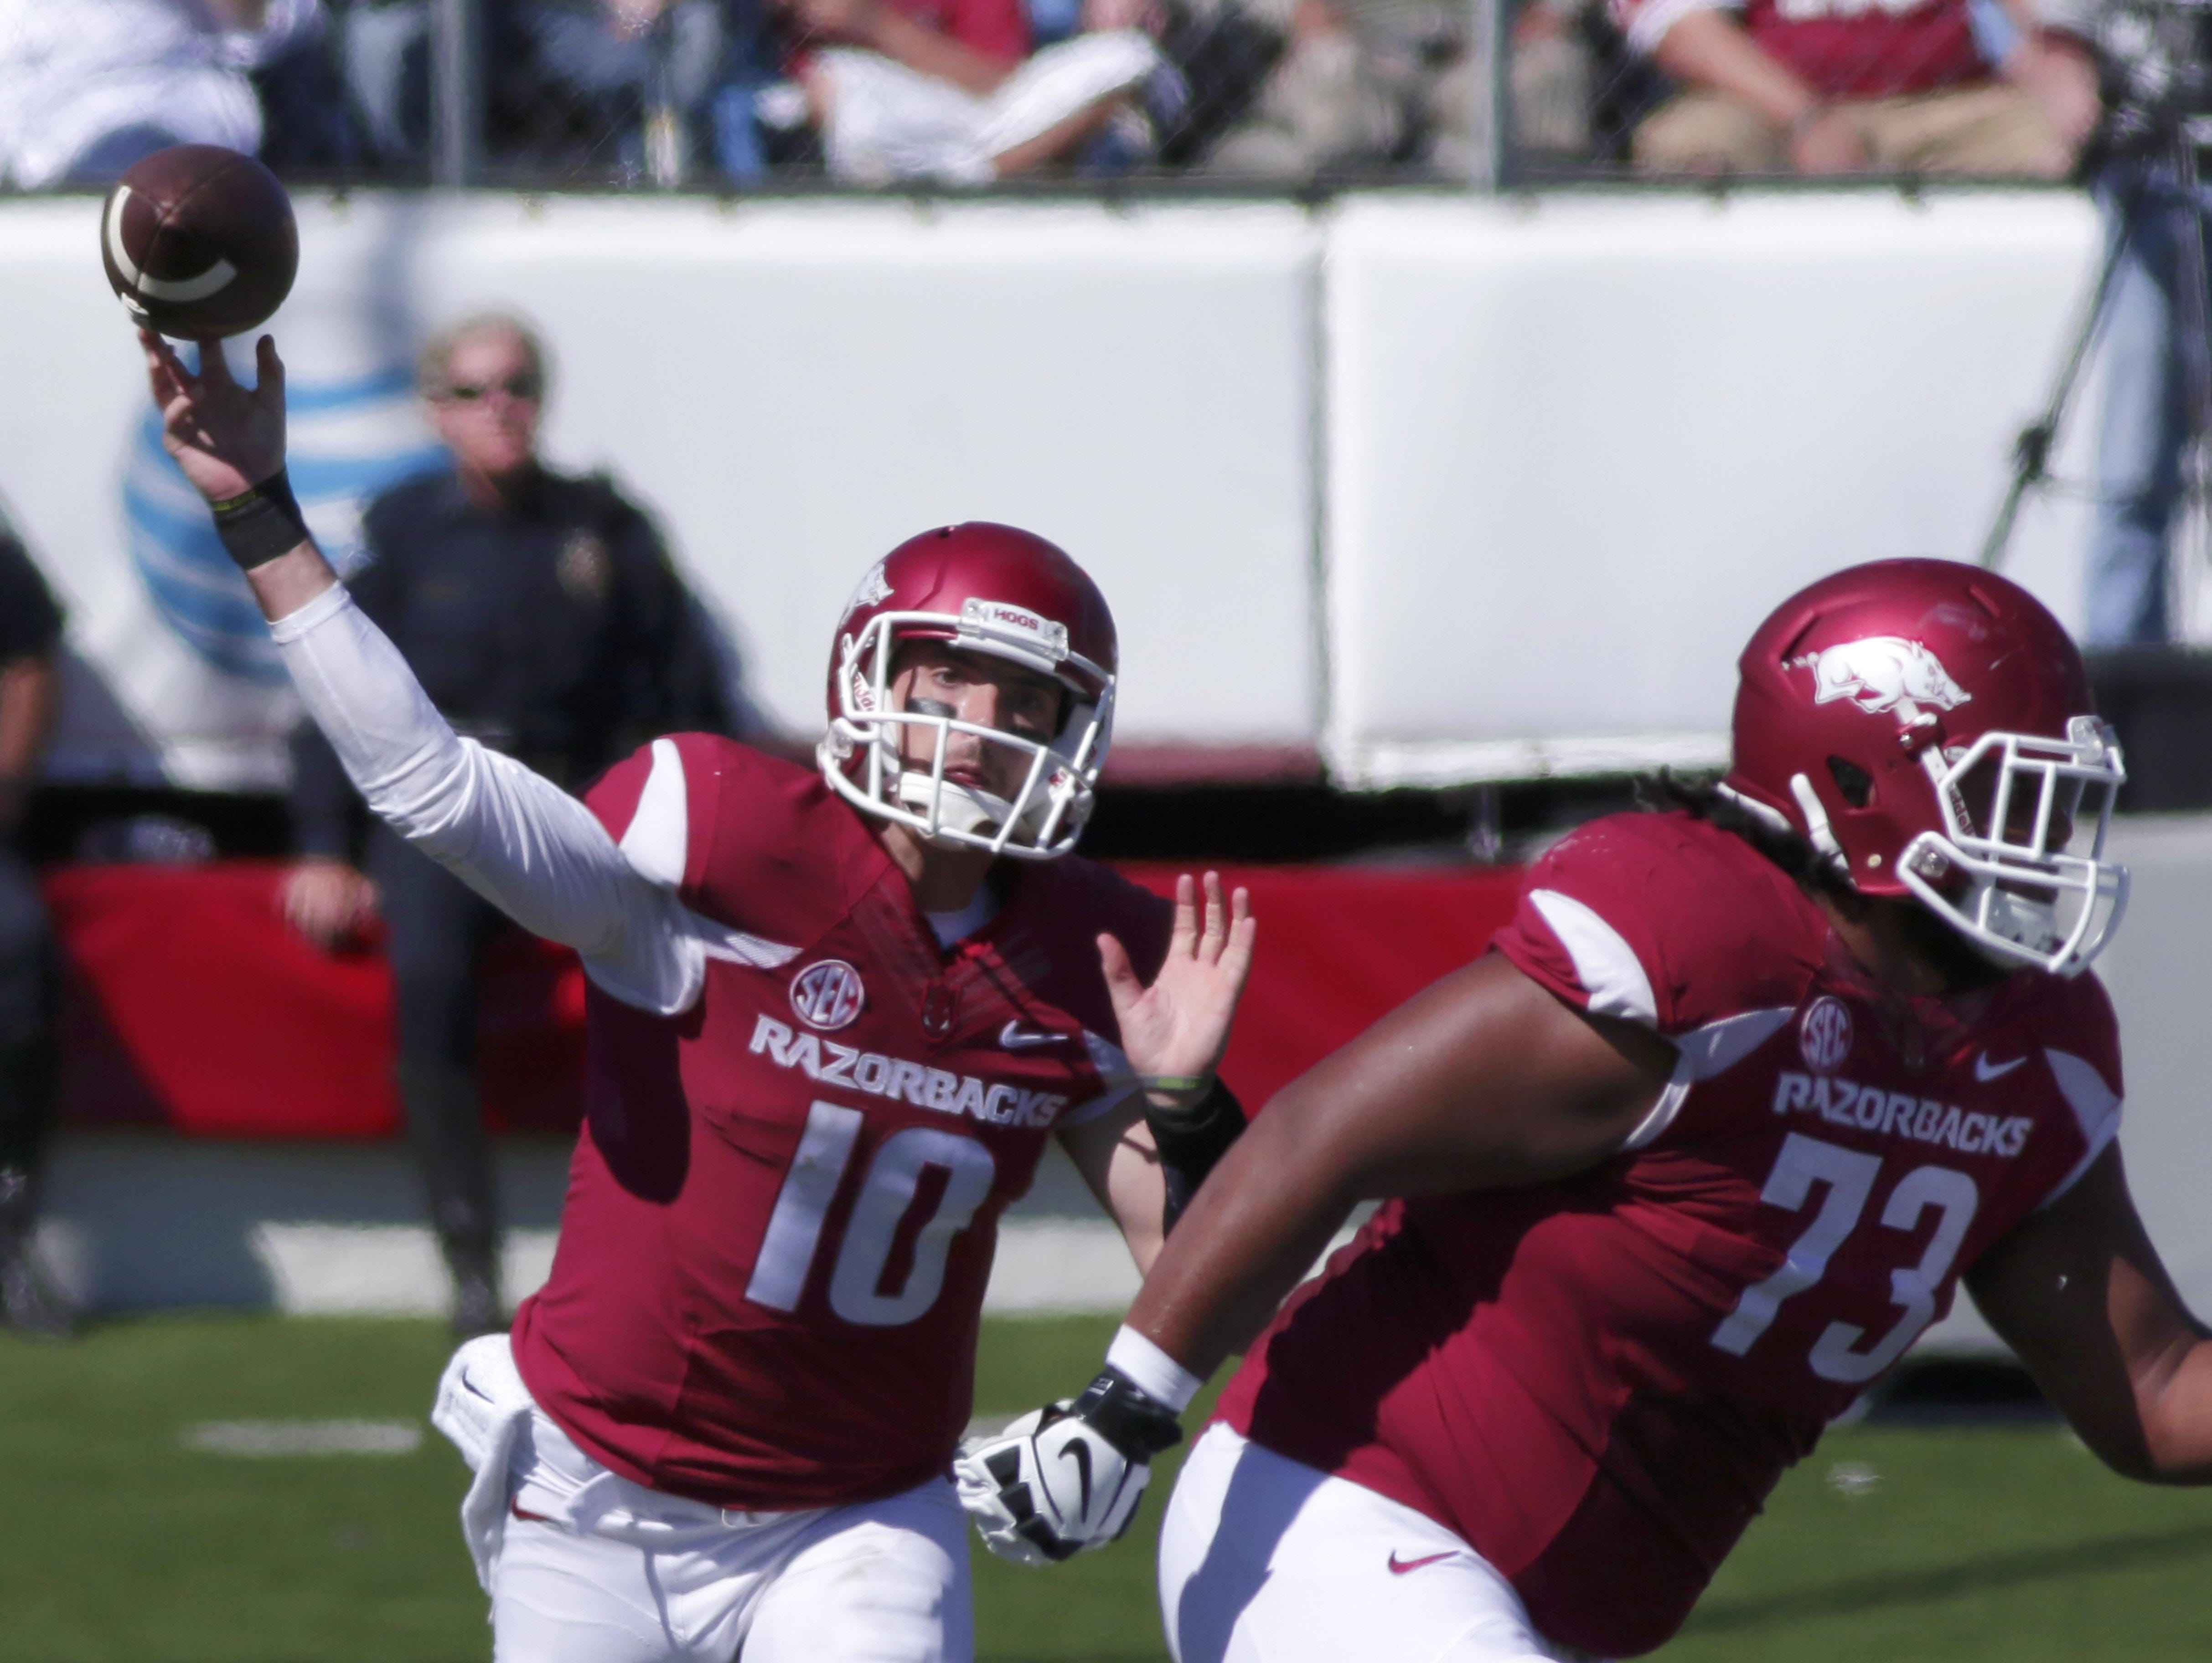 Arkansas quarterback Brandon Allen (10) is off to a career-best start, leading the SEC in passing with 720 yards after two games. But the Razorbacks are looking to back off the pass and focus on their running attack this week against Texas Tech.